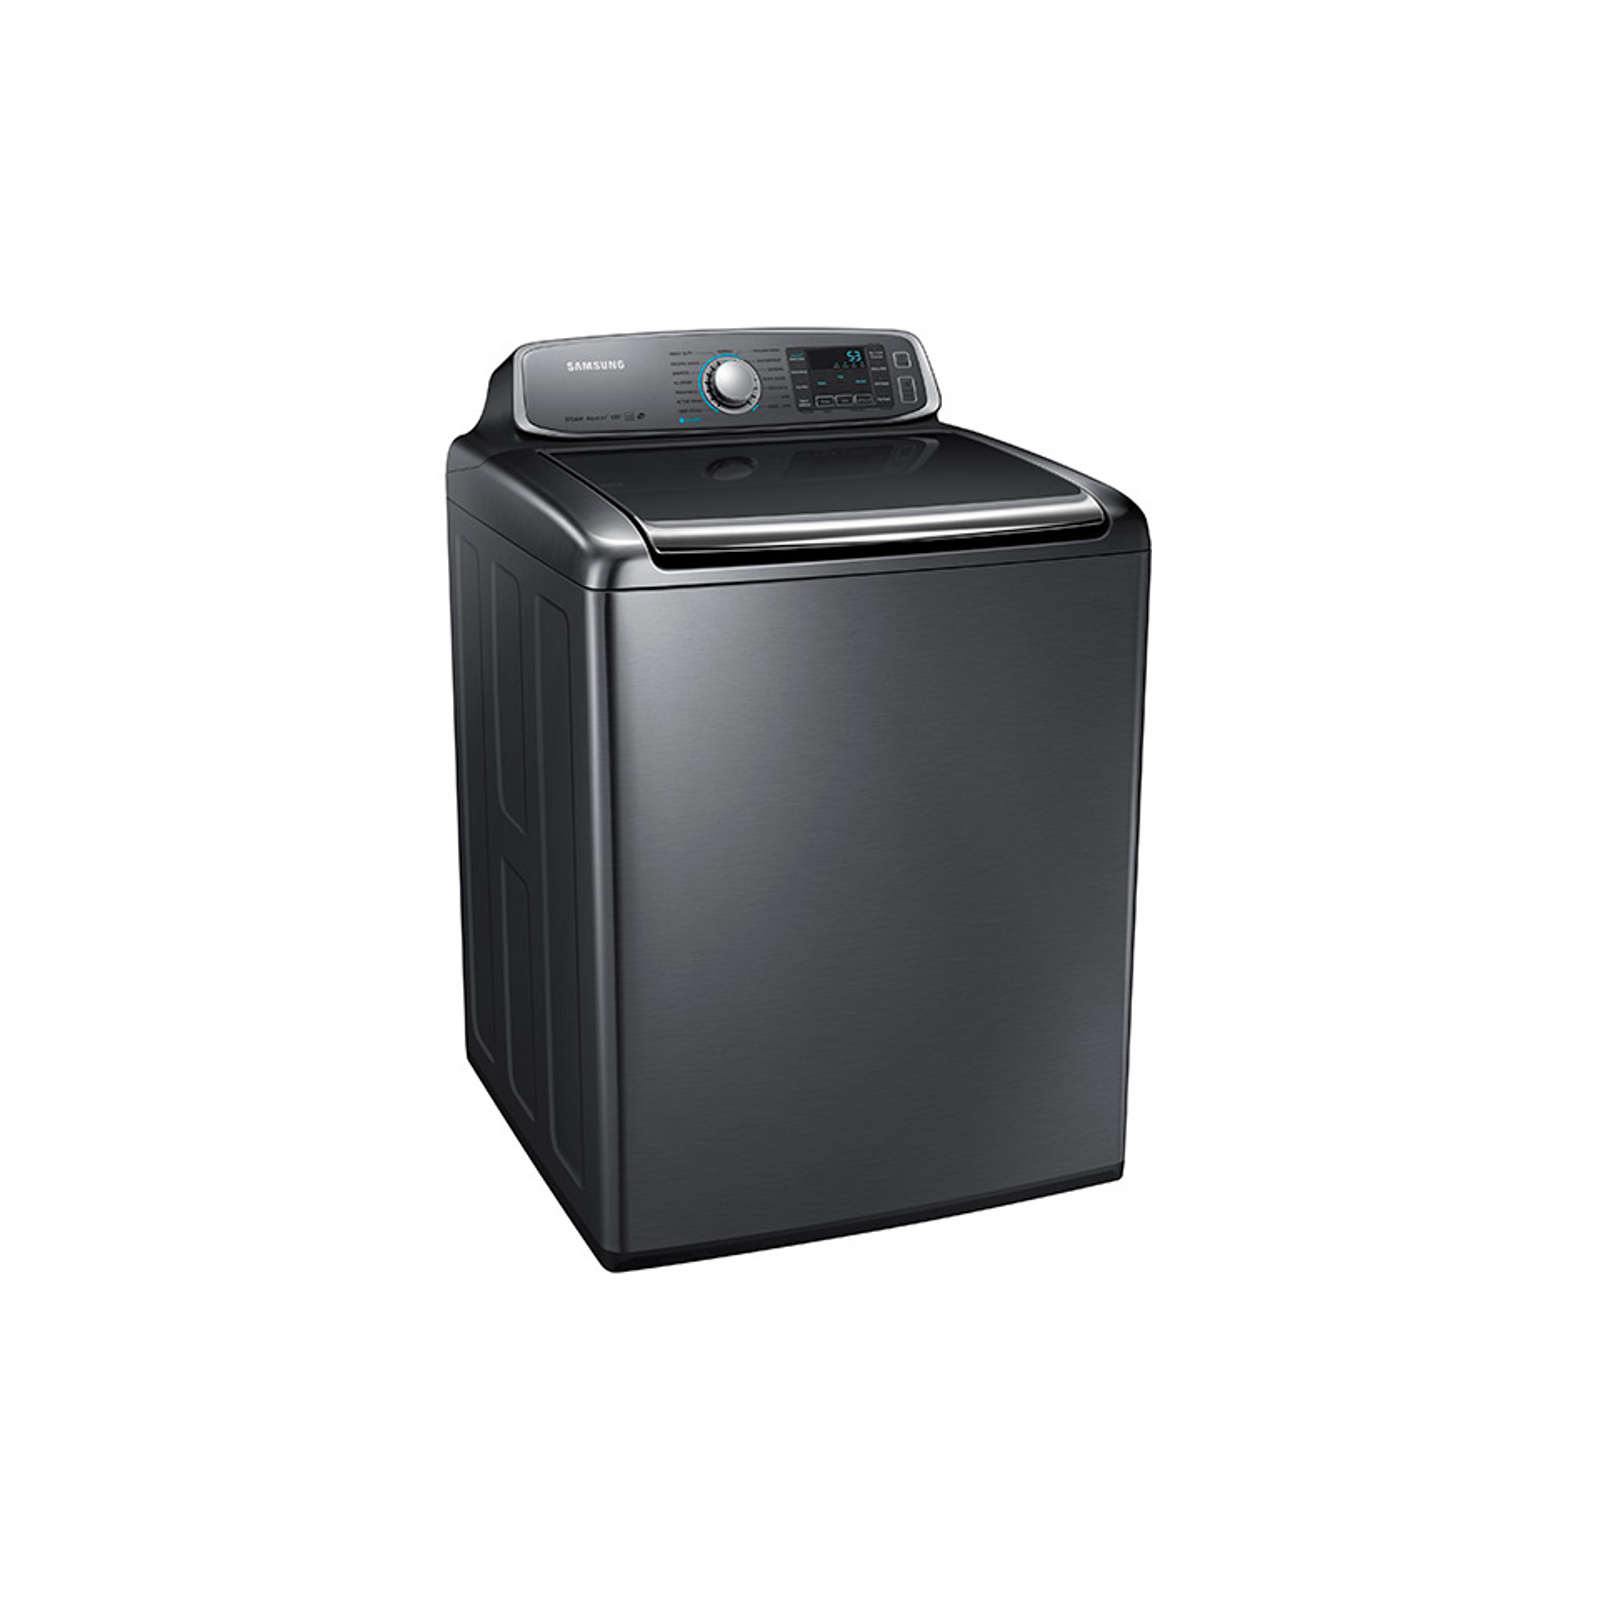 Samsung WA56H9000AP 5.6 cu. ft. Top-Load Washer - Stainless Platinum